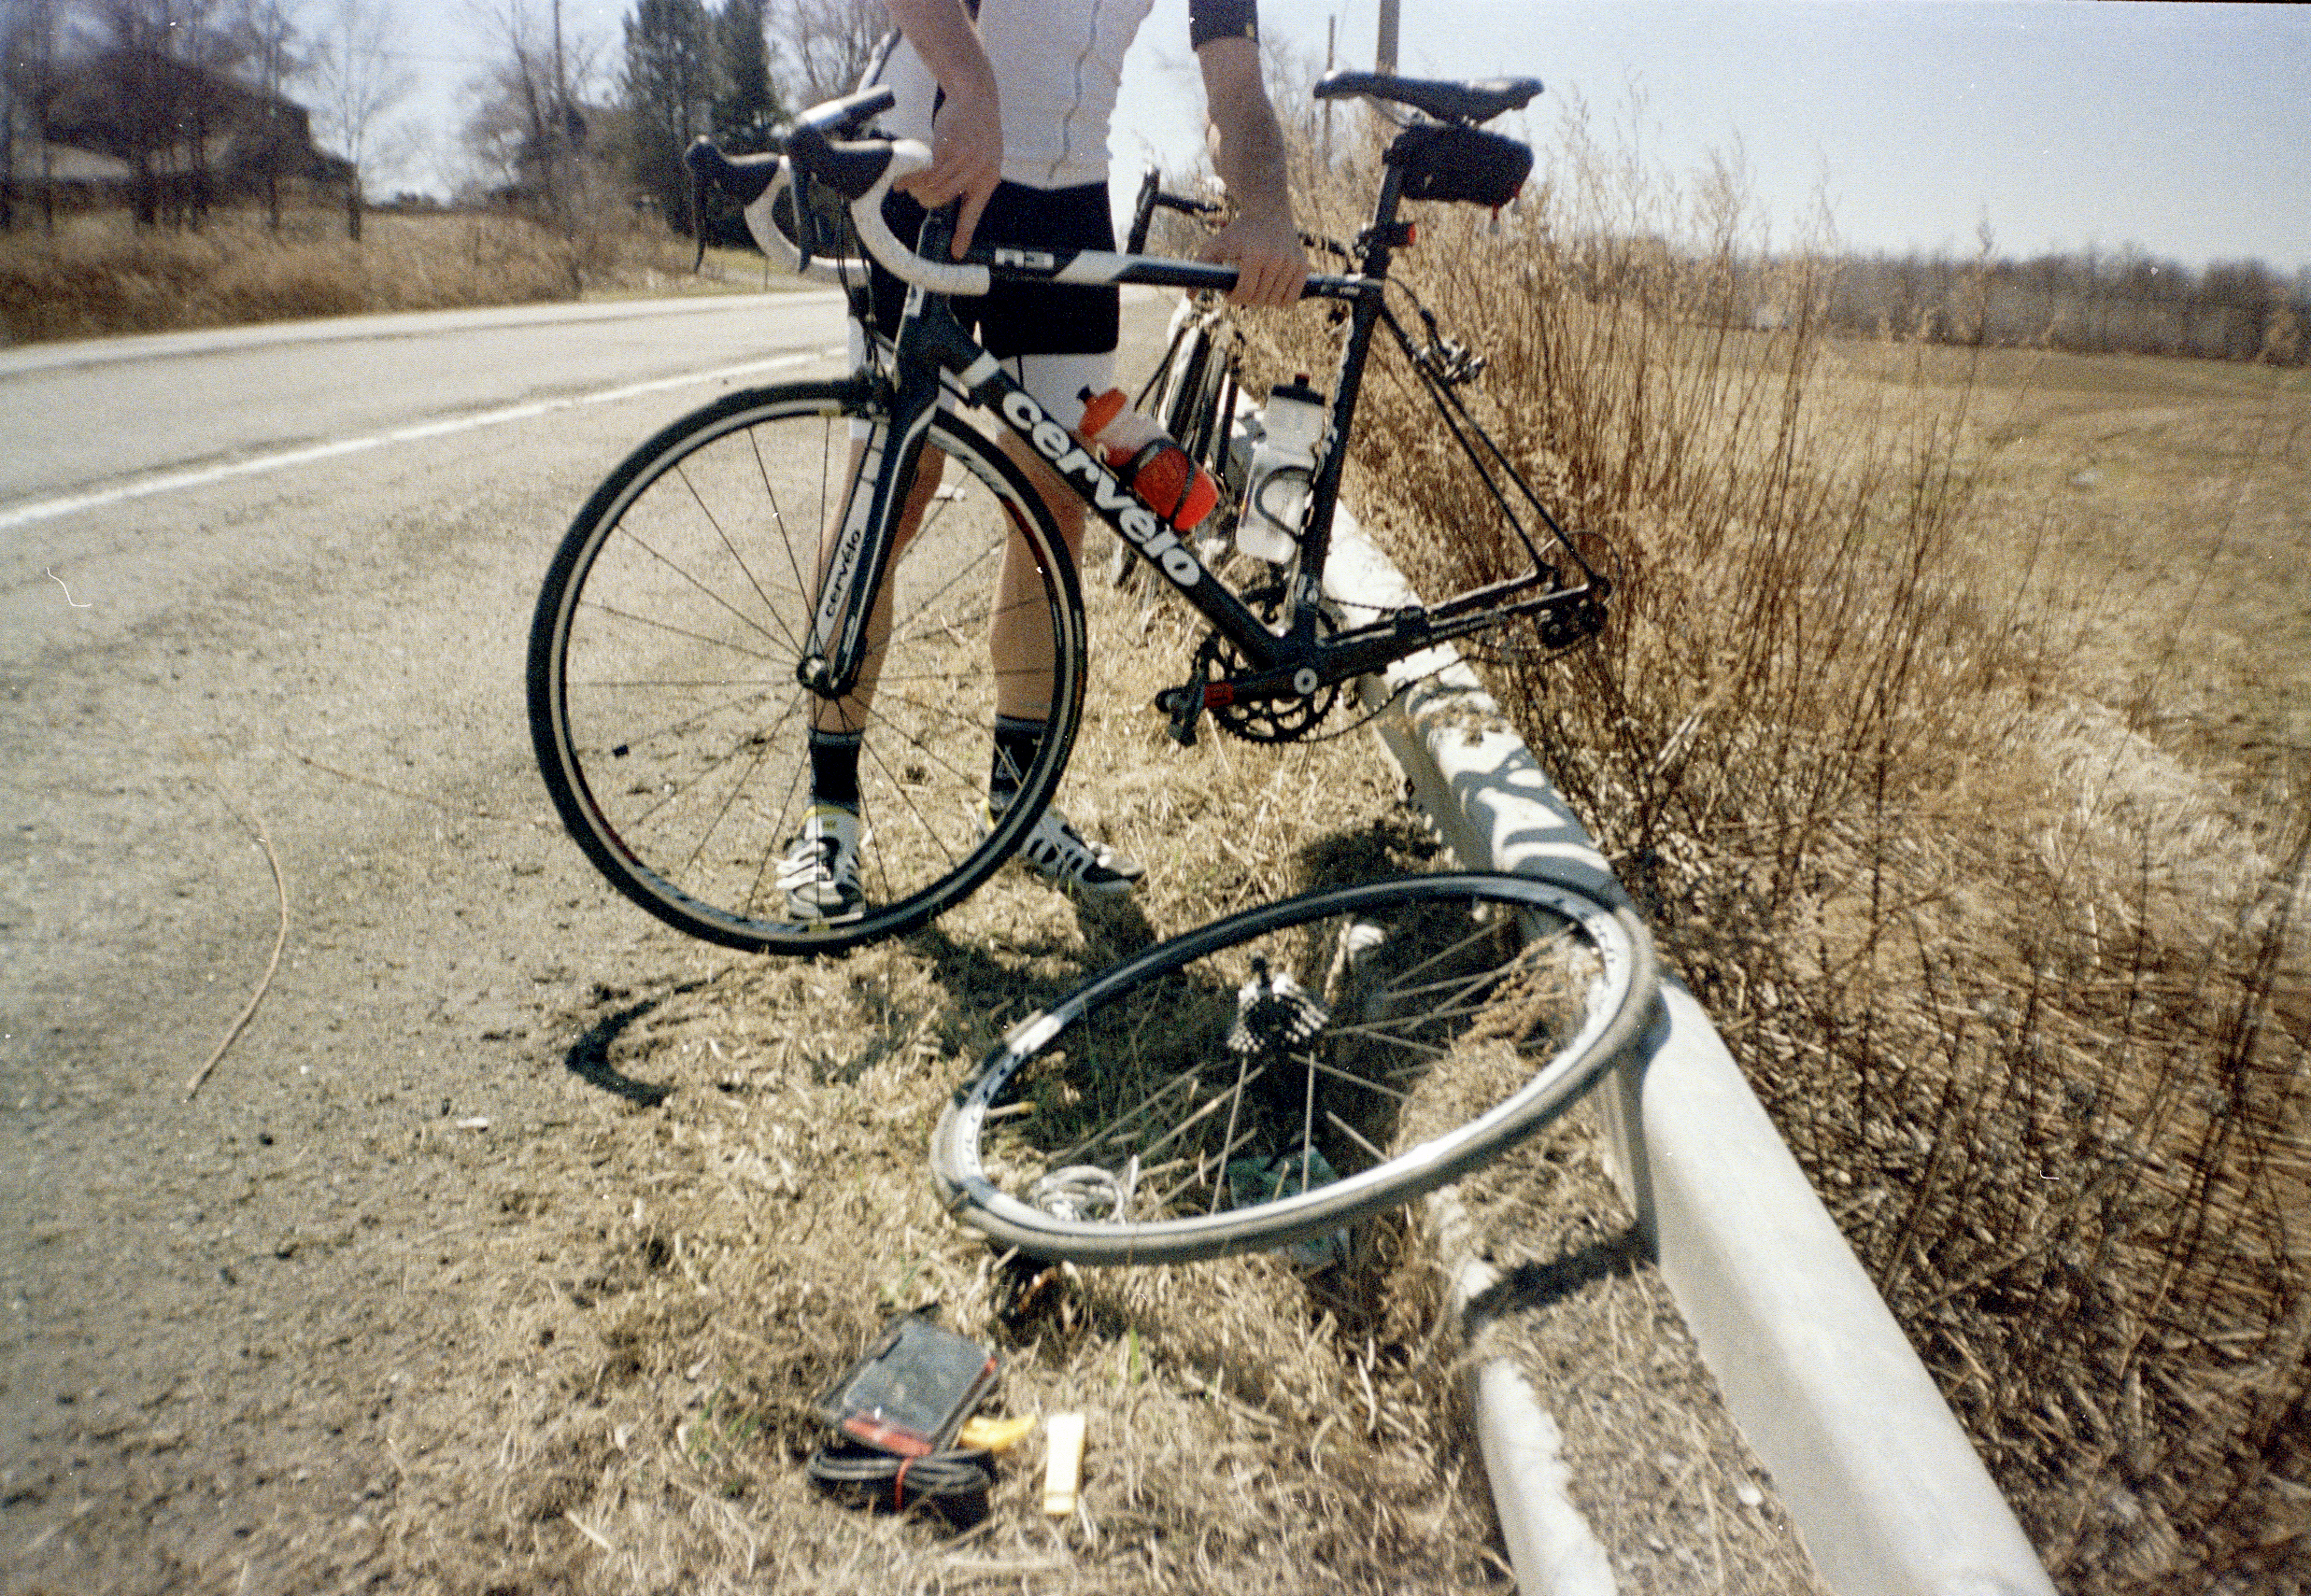 This past Sunday, Trevor and I rode 104 miles, mainly because we wanted to see if we could and because the weather was perfect. At mile 5, I got a flat. My mom gave me this point-and-shoot film camera and I found that it fit really nicely in my jersey pocket. This was my first experience using this type of camera and it was remarkable; I felt completely relaxed and found myself experimenting. I had no idea what any of the photos would look like and it was exciting to have that element of surprise.